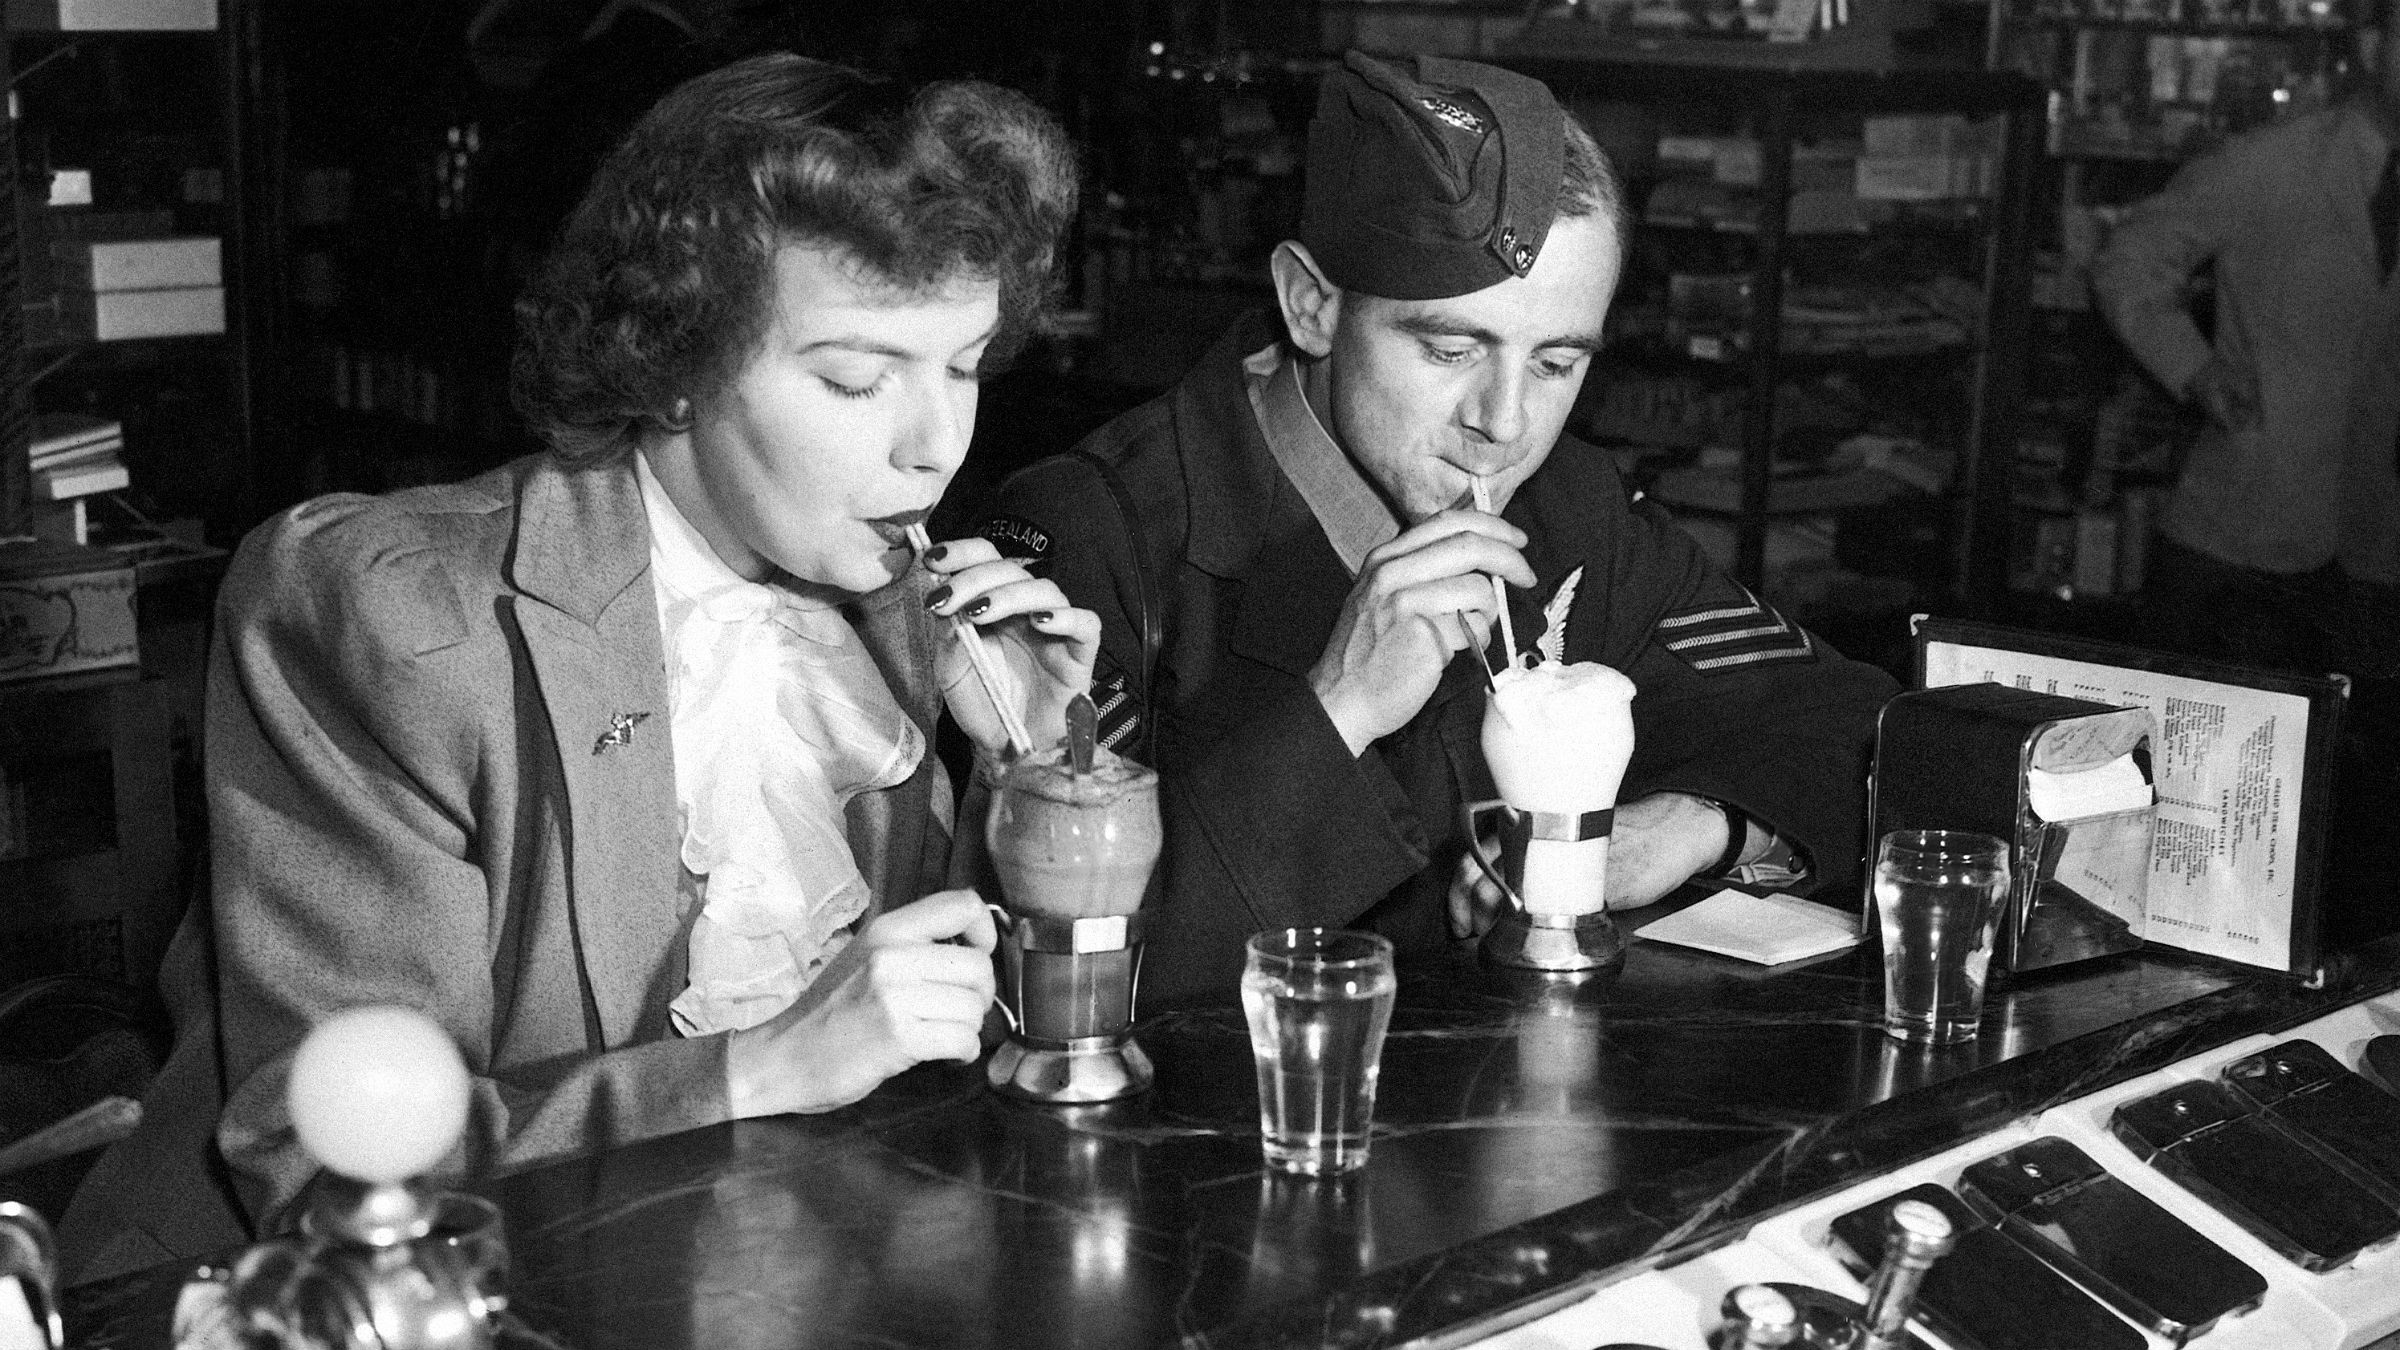 Couple at ice cream parlor